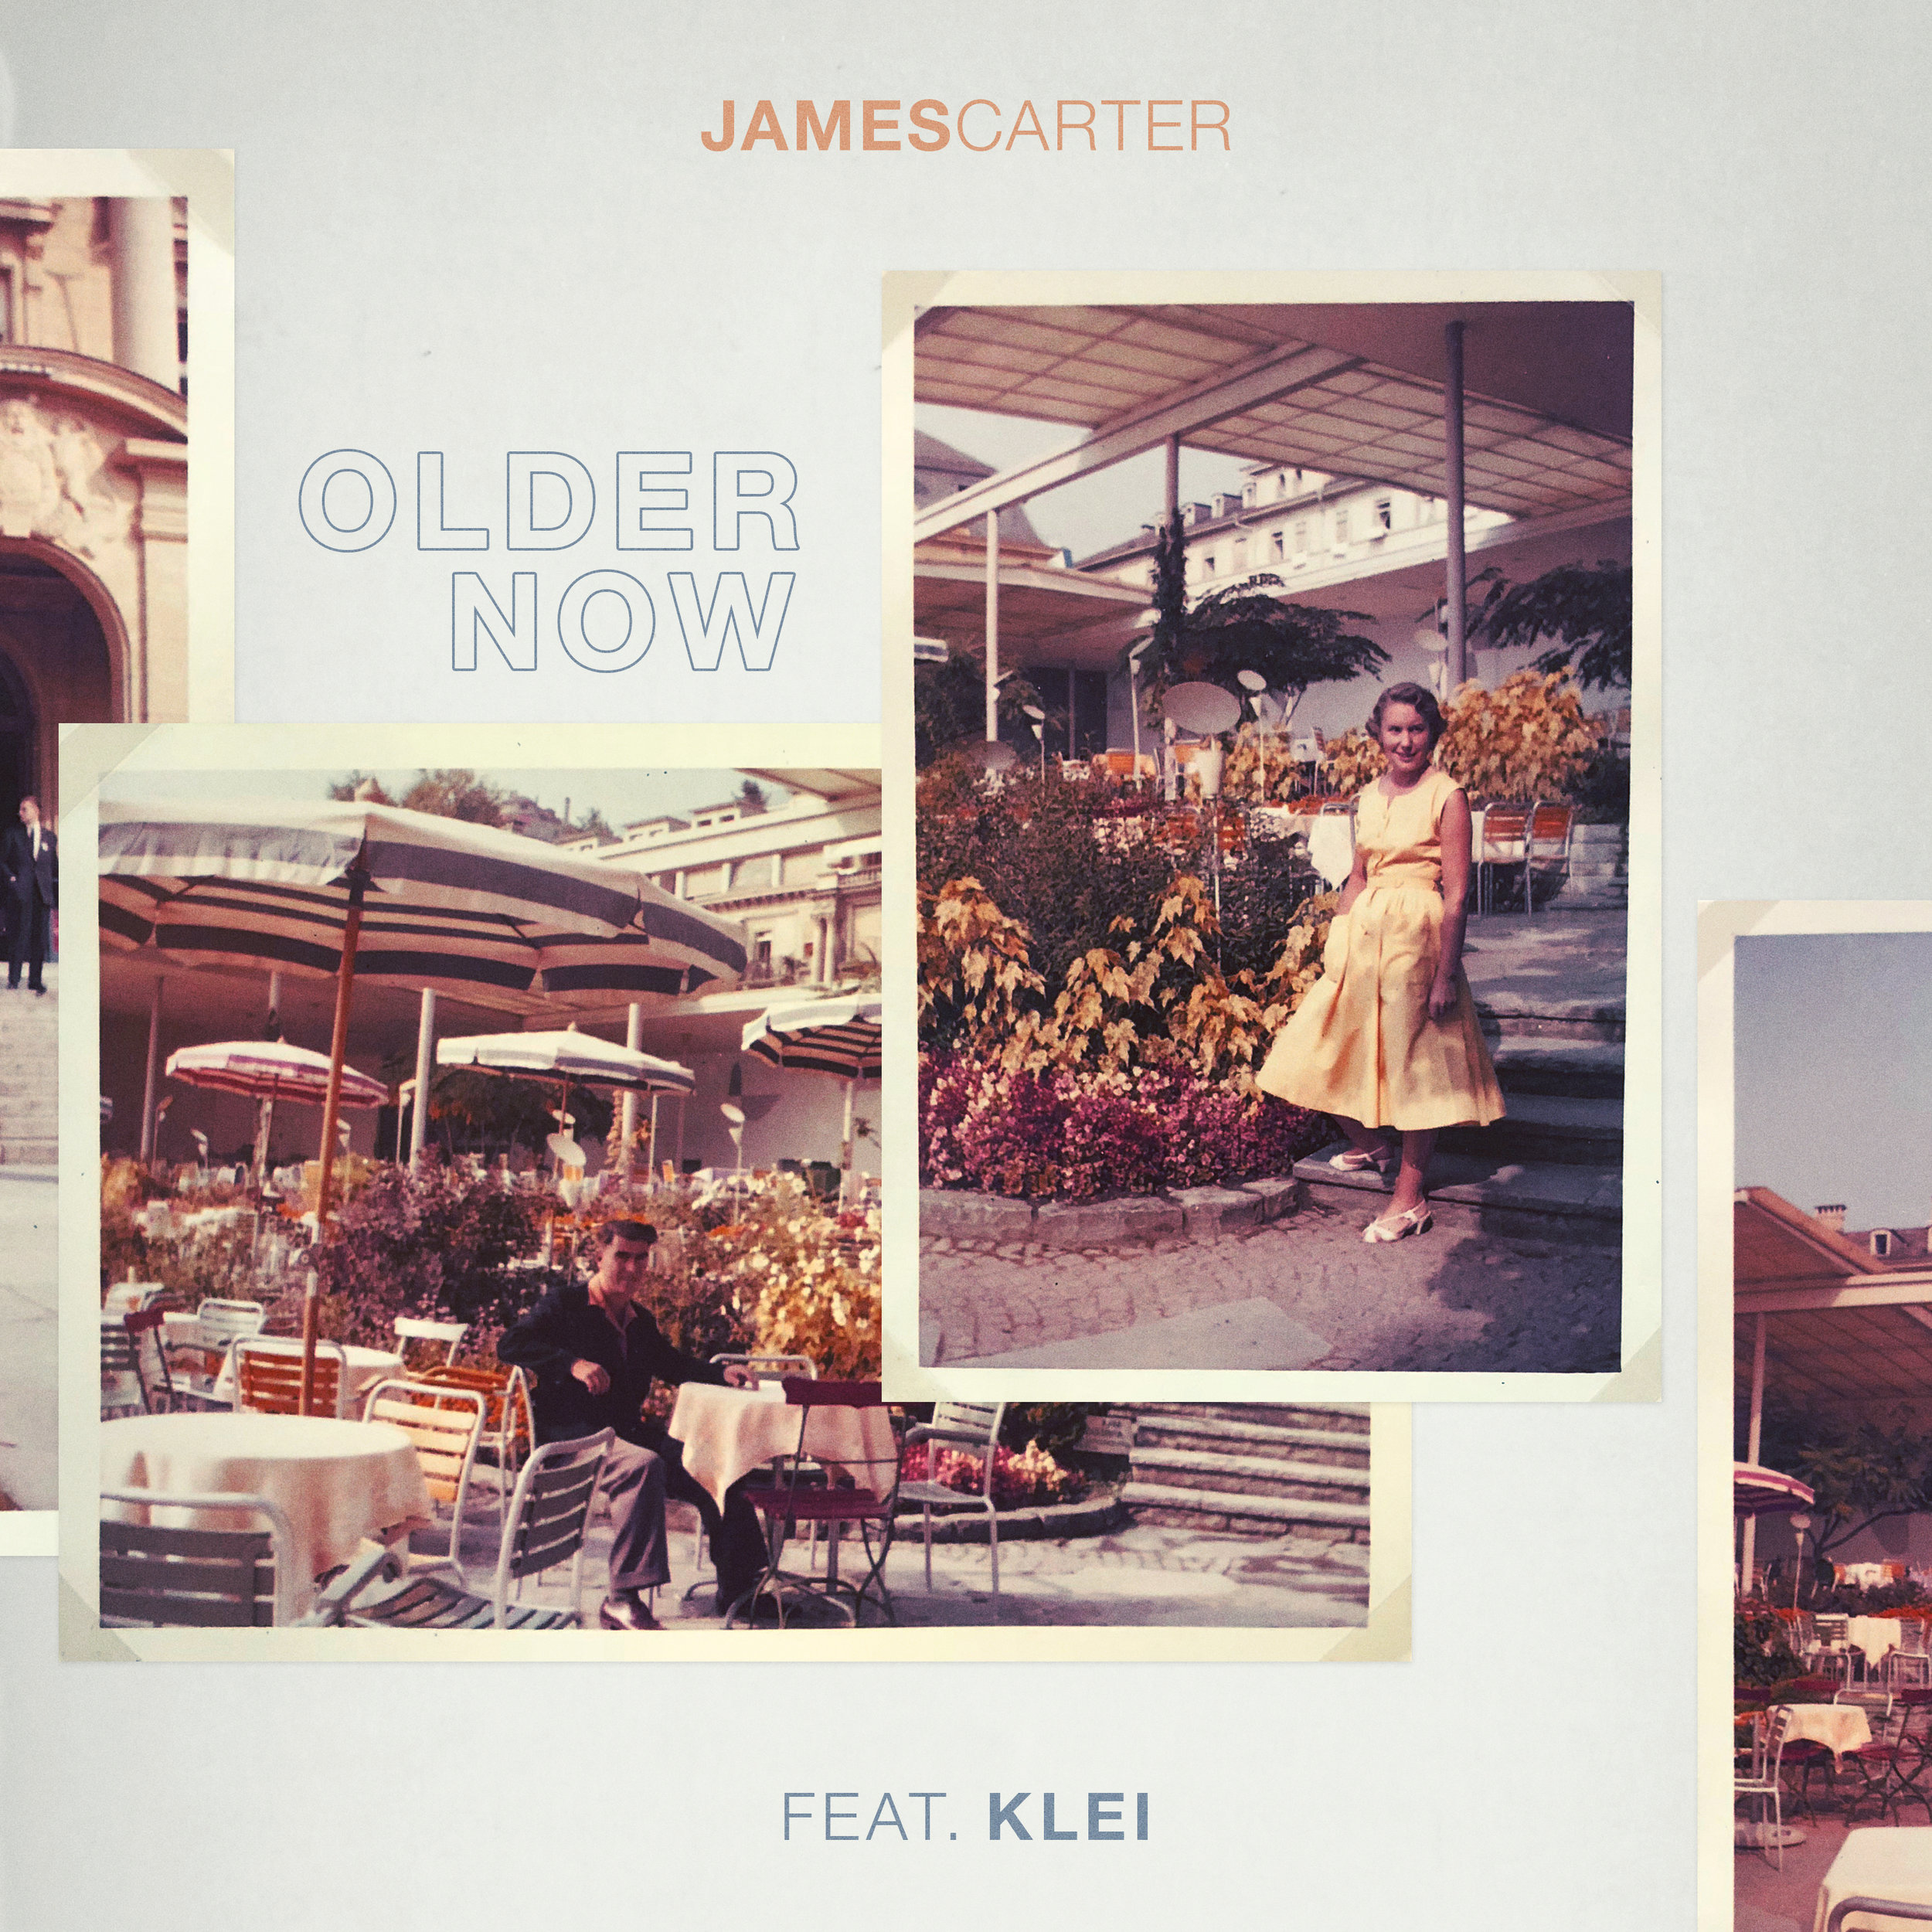 James Carter - Older Now (feat. klei)